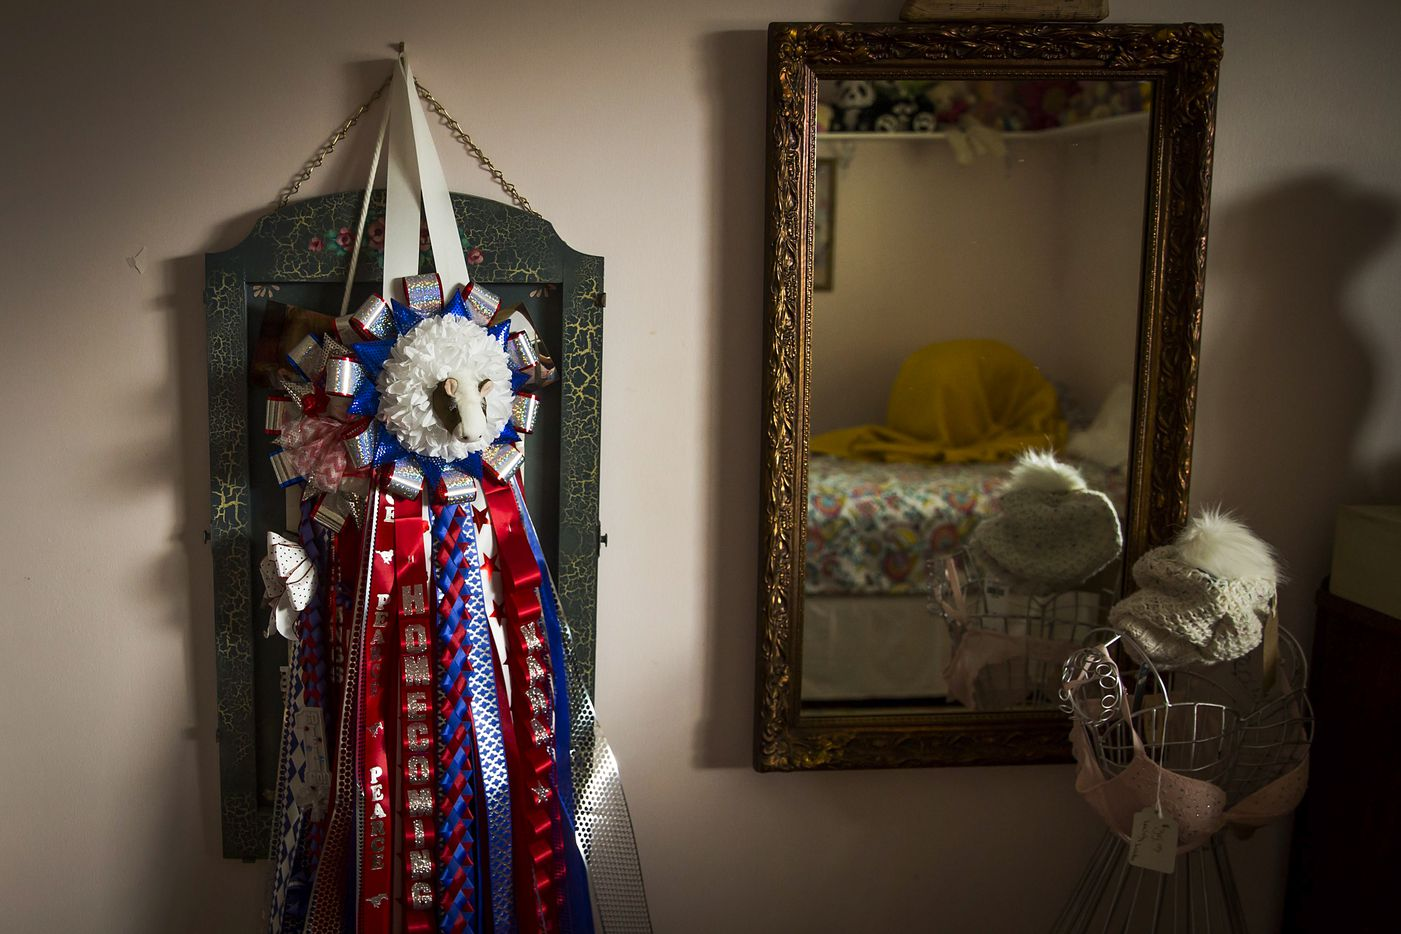 A homecoming mum presented to her by classmates at her school hangs on the wall as Kara Zartler is seen in the mirror, wrapped in her blanket, kneeling on her bed and rocking forward and back, one of her usual calming mechanisms,  on Friday, March 17, 2017, in Richardson.(Smiley N. Pool/The Dallas Morning News)